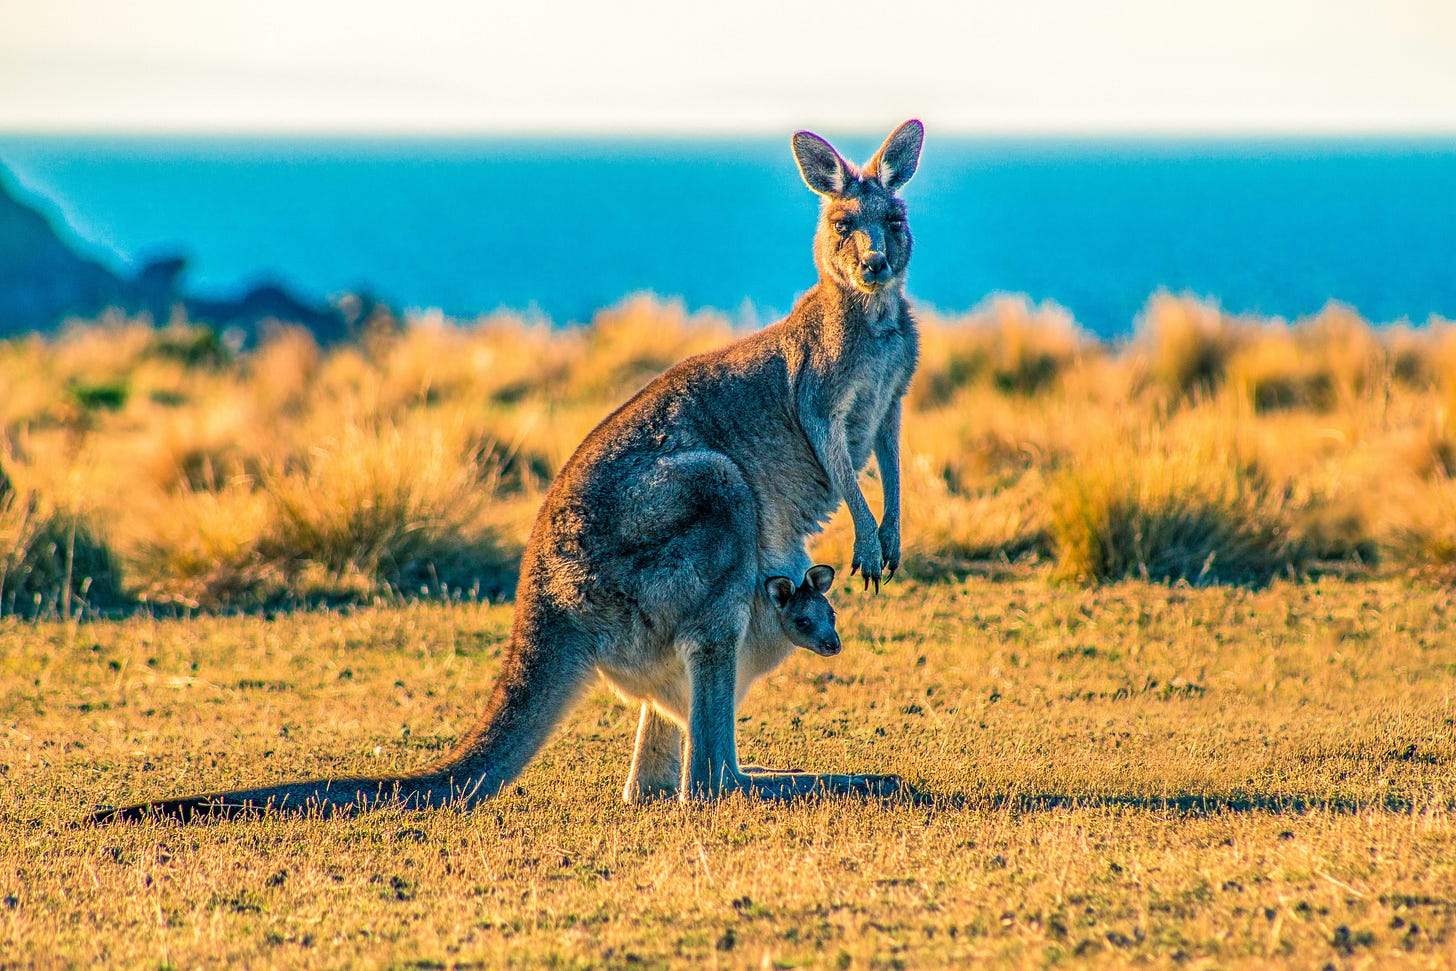 Kangaroo's are native to the region of North Queensland, Australia. Home of the people who speak Guugu Yimithirr.